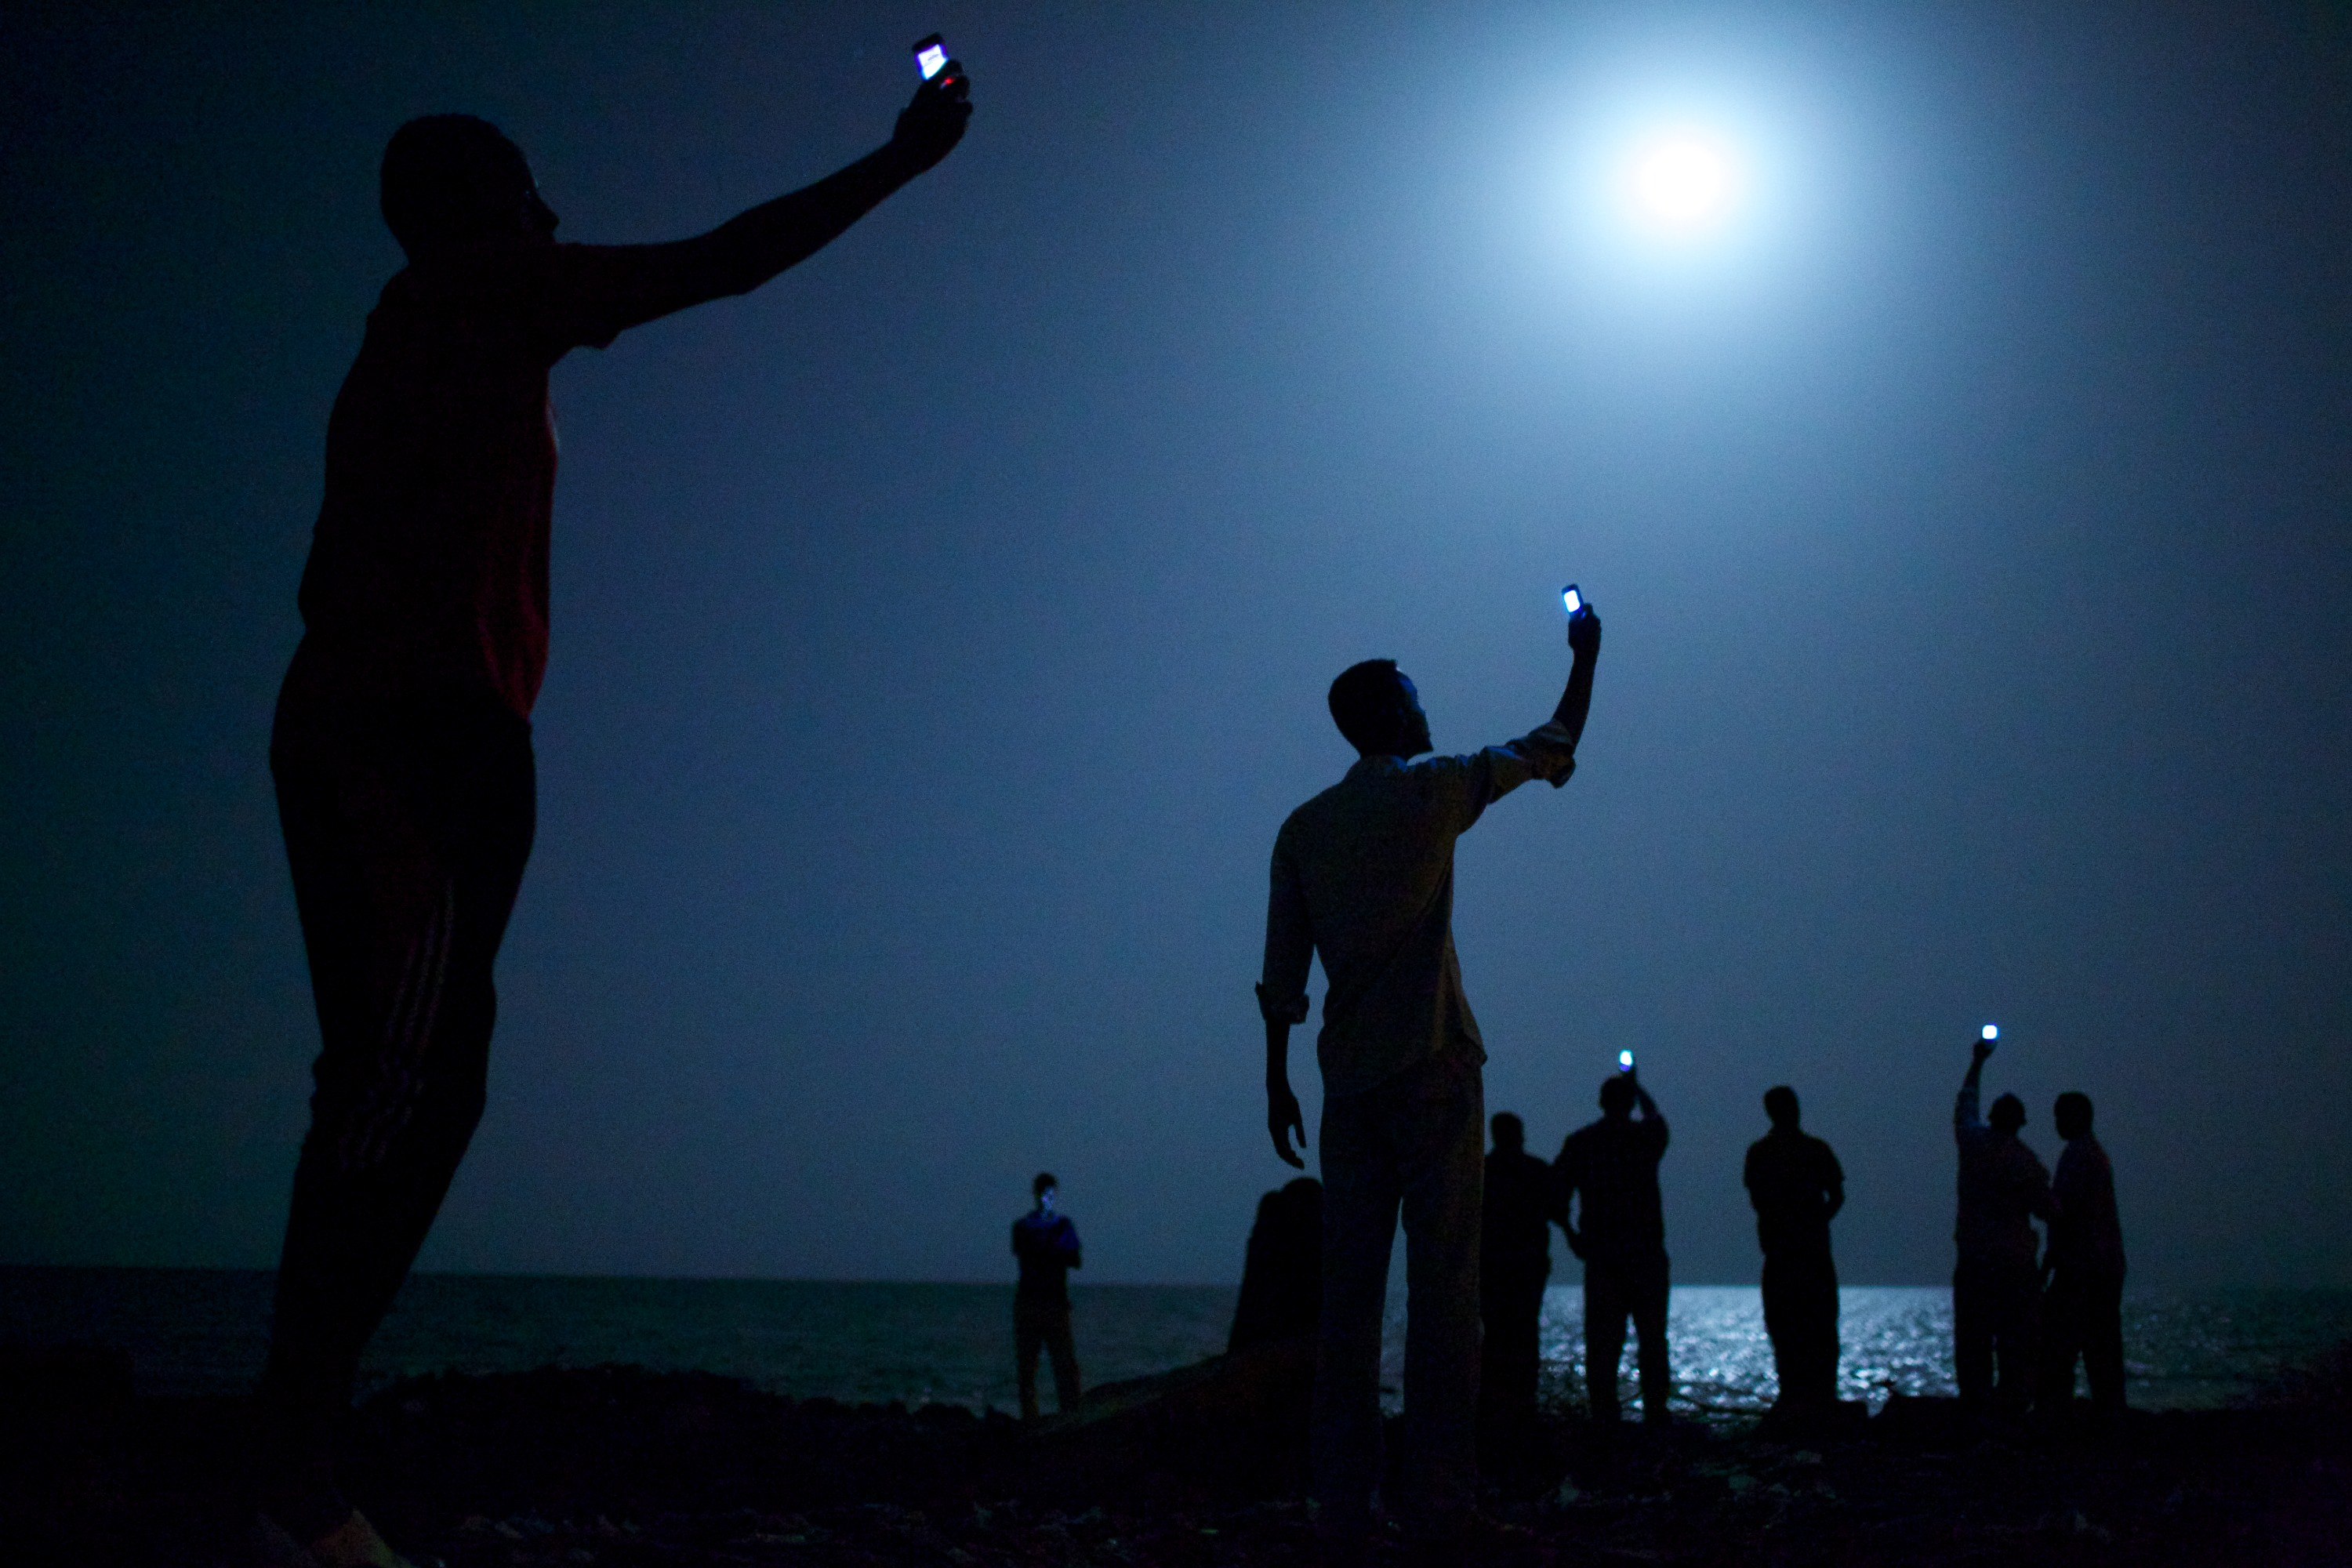 26 February 2013, Djibouti City, Djibouti -- African migrants on the shore of Djibouti city at night, raising their phones in an attempt to capture an inexpensive signal from neighboring Somalia—a tenuous link to relatives abroad. Djibouti is a common stop-off point for migrants in transit from such countries as Somalia, Ethiopia and Eritrea, seeking a better life in Europe and the Middle East. Photo: John Stanmeyer, USA, VII for National Geographic